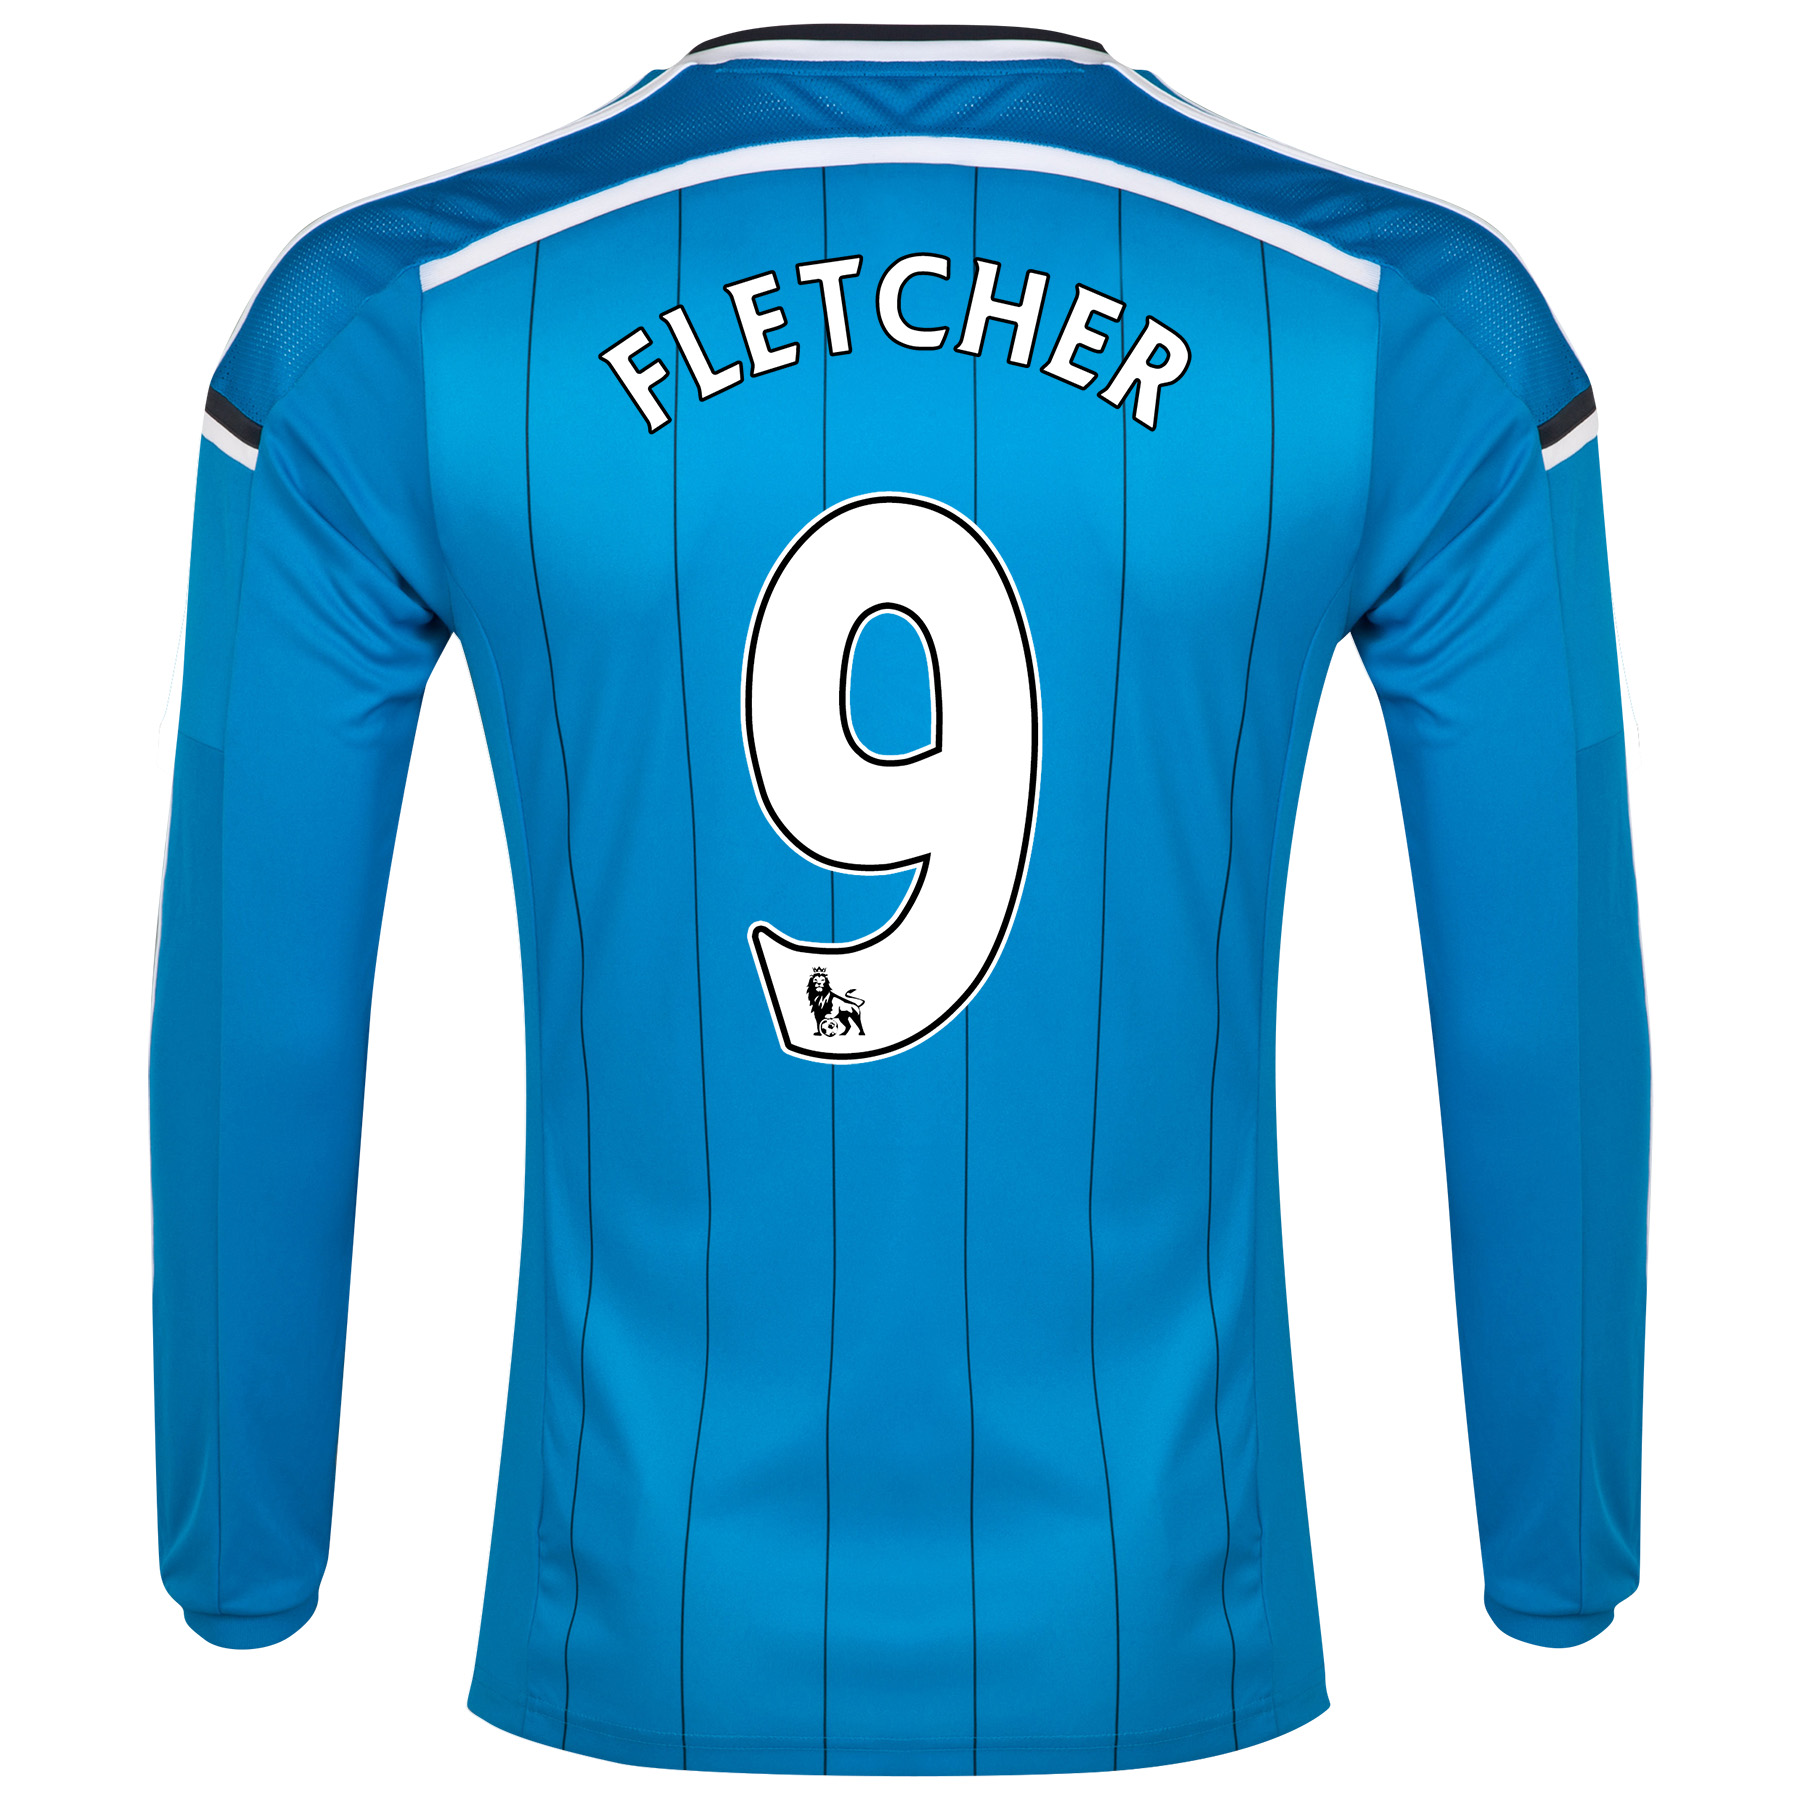 Sunderland Away Shirt 2014/15 - Long Sleeved Lt Blue with Fletcher 9 printing